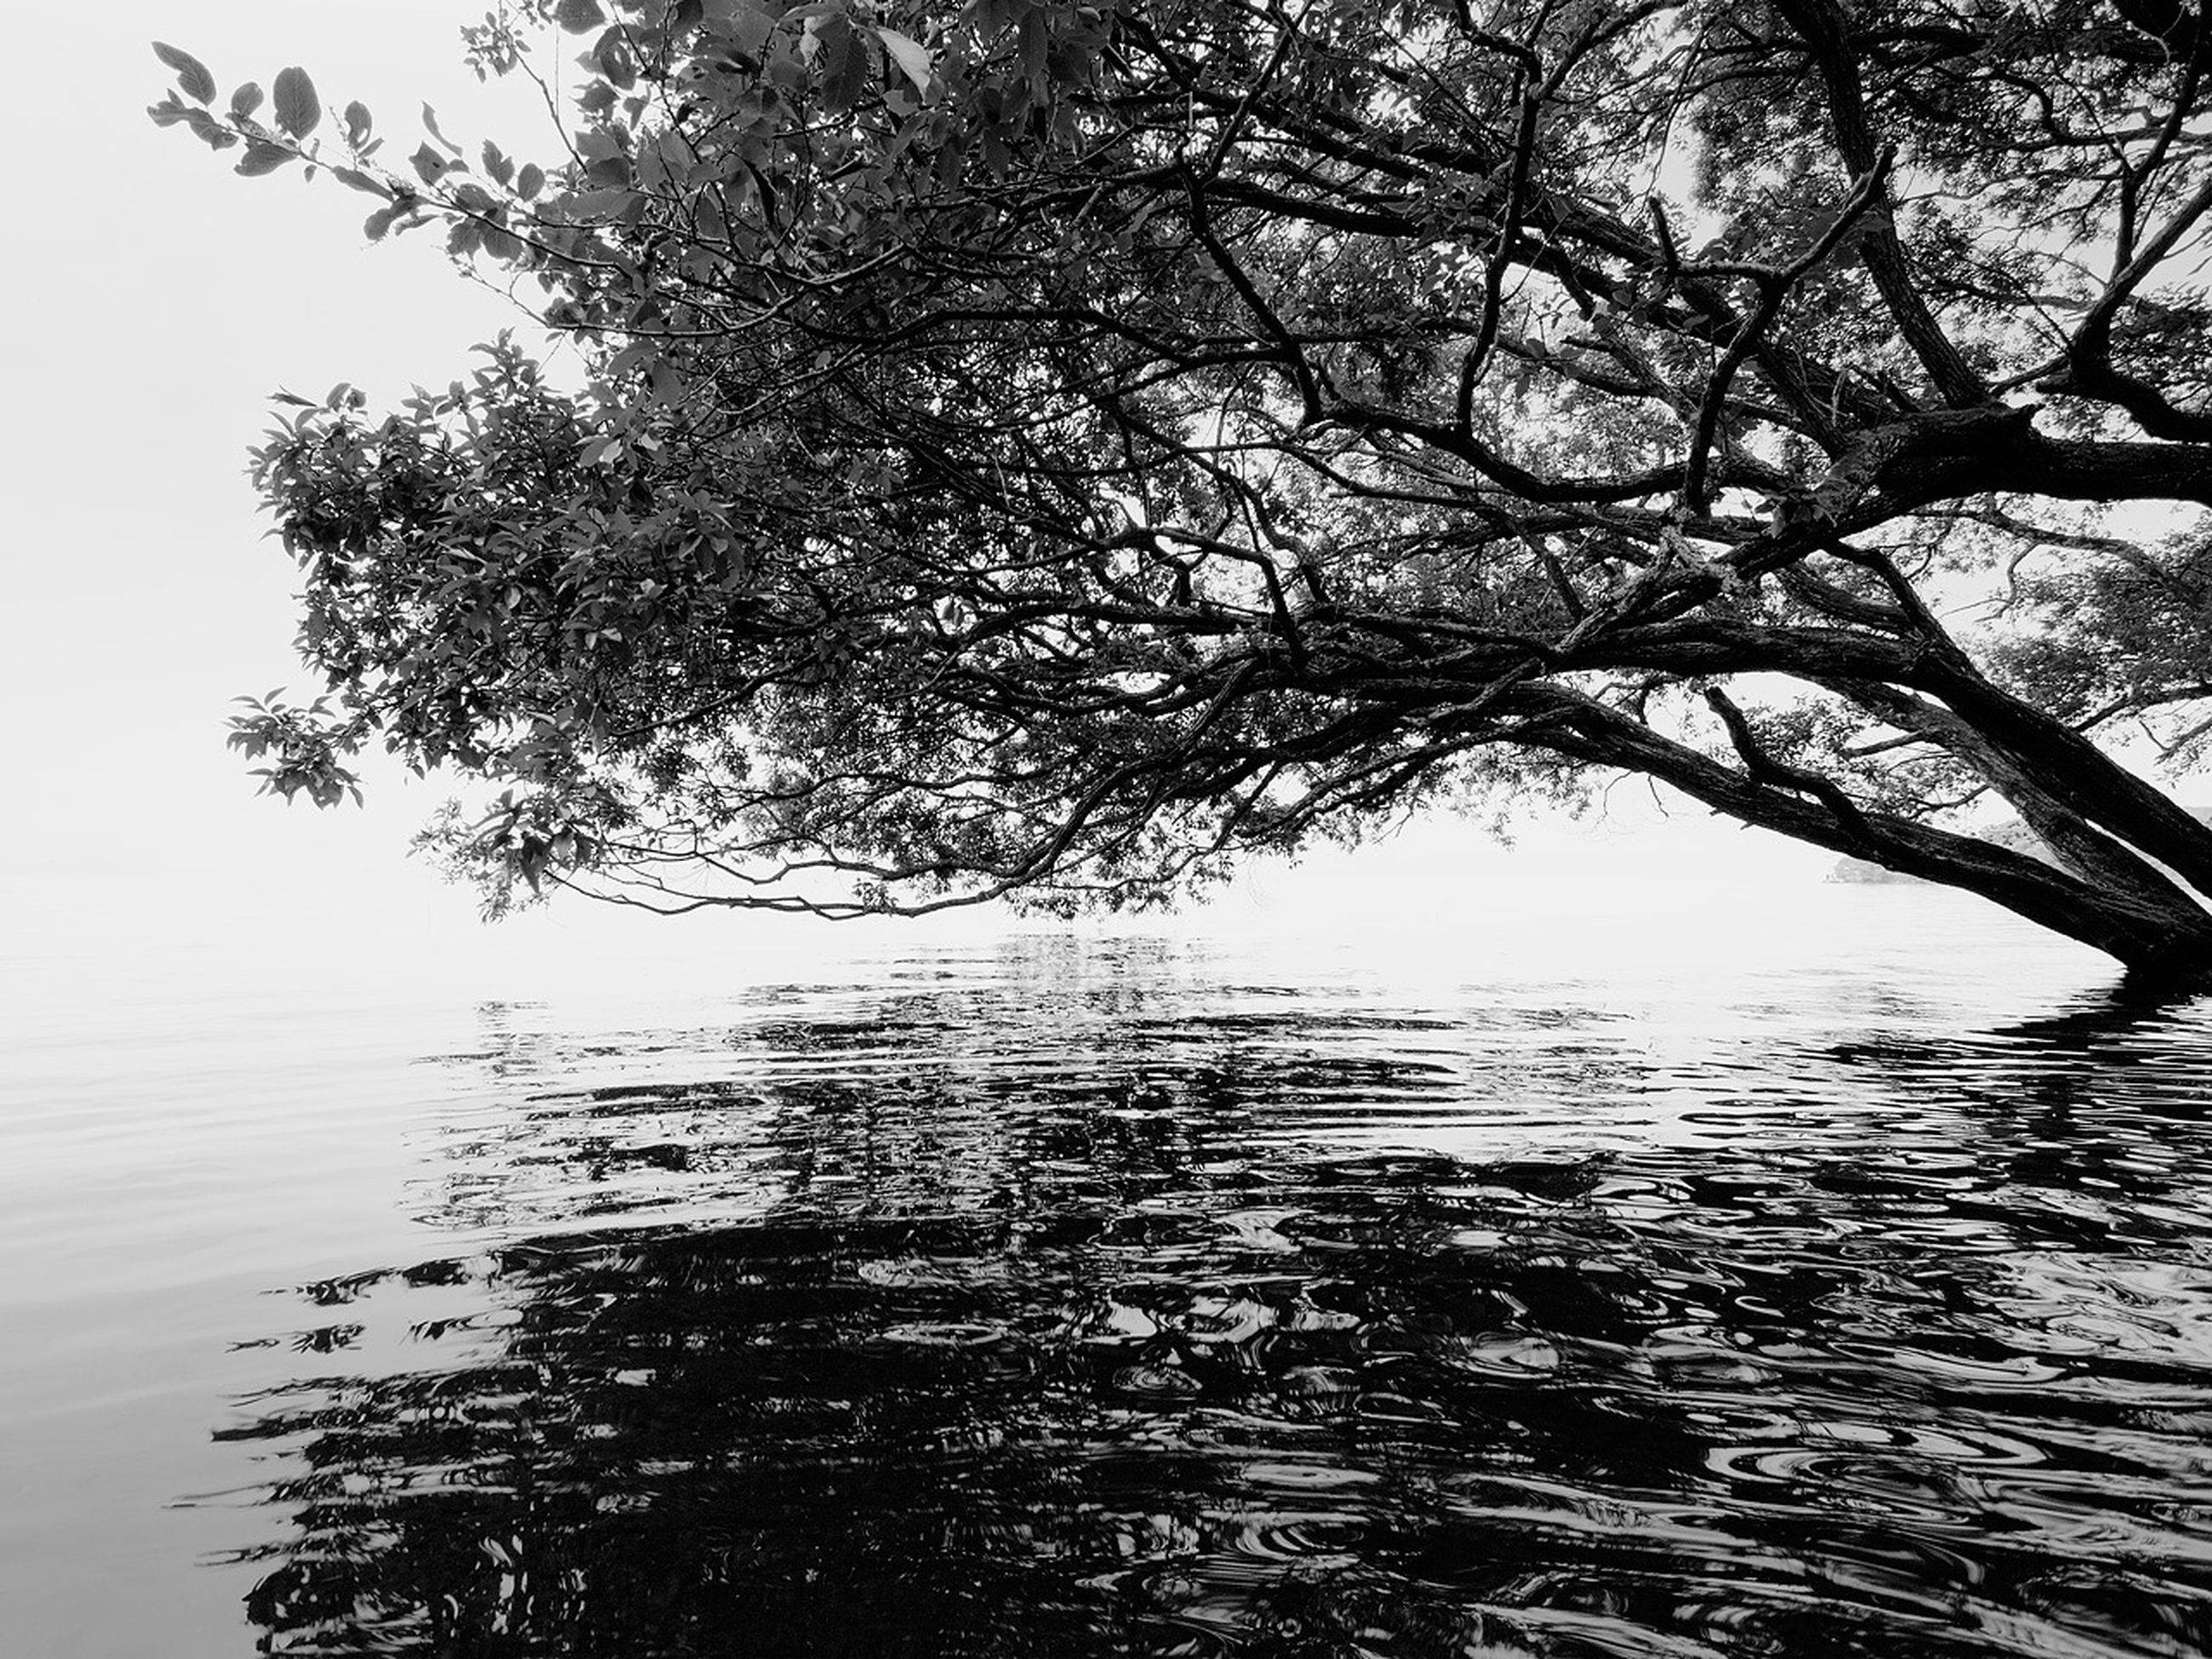 tree, water, tranquility, branch, tranquil scene, waterfront, nature, beauty in nature, scenics, lake, bare tree, reflection, sky, growth, clear sky, outdoors, rippled, no people, day, idyllic